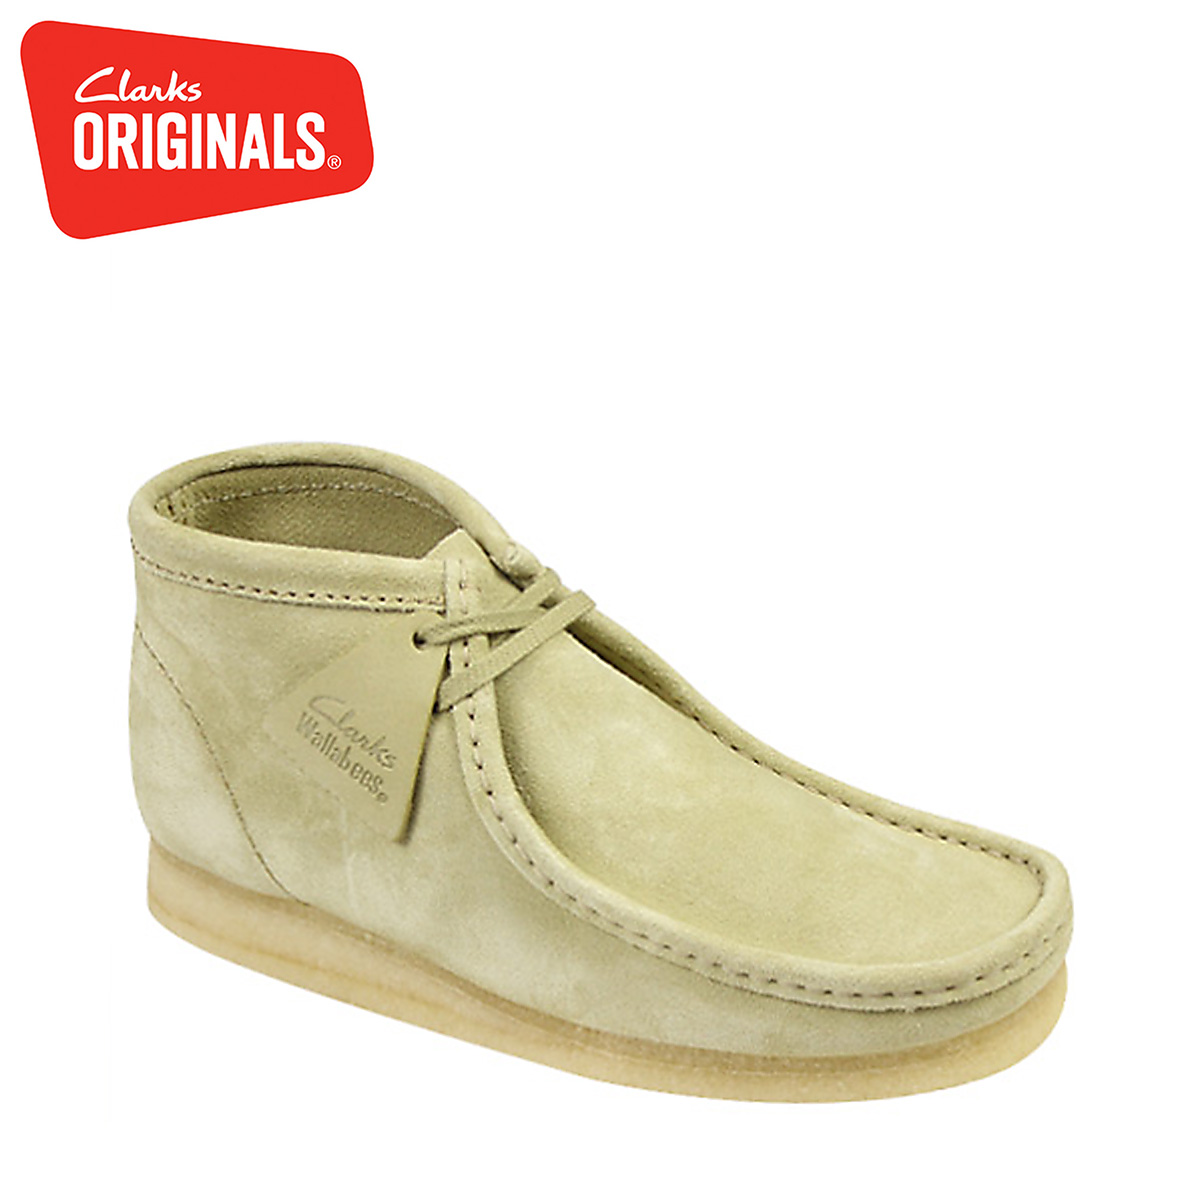 Clarks ORIGINALS WALLABEE BOOT wallaby boots men zouk Lark's originals M Wise 26103811 [1711]